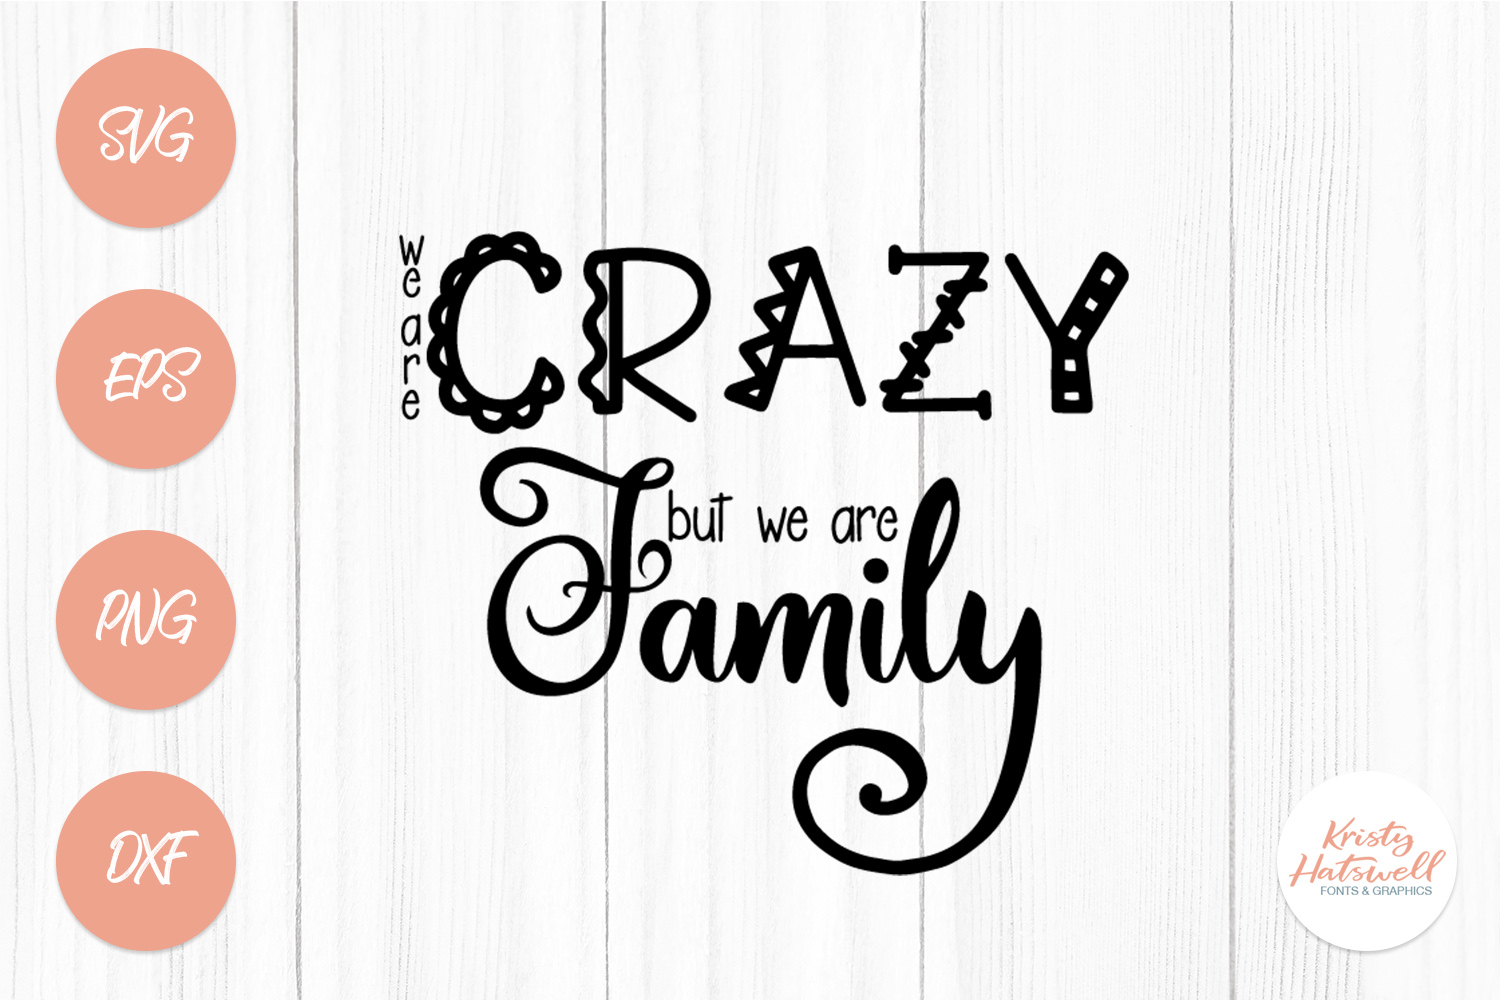 We are crazy but we are family SVG cutting file example image 1